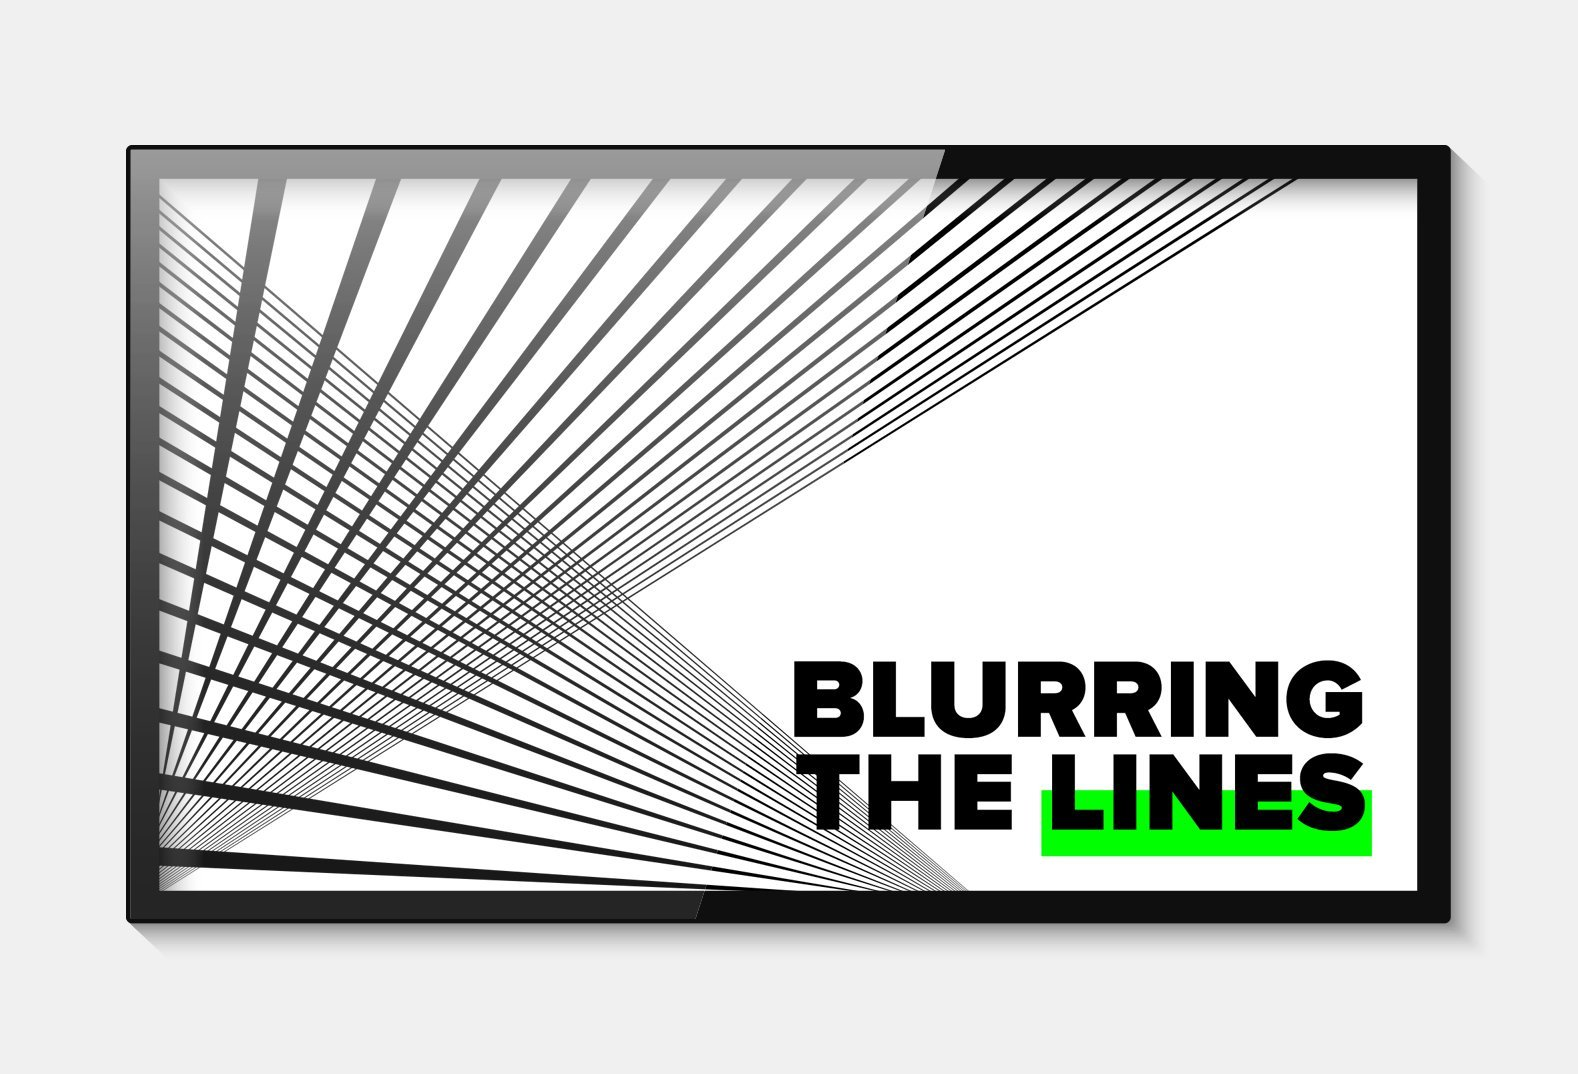 Blurring the Lines Sermon Series